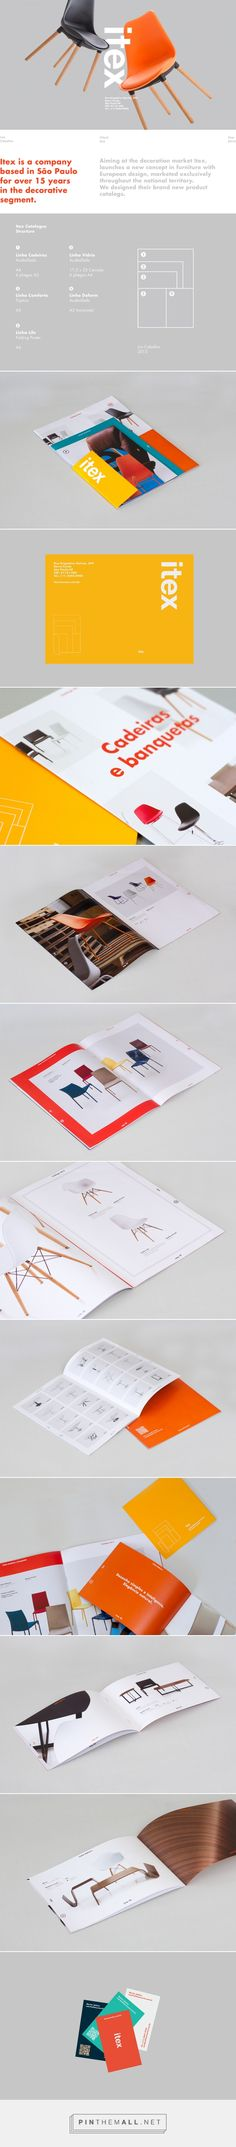 Itex™ - Furniture Catalogue on Behance. - a grouped images picture - Pin Them All (Furniture Designs Poster) Pallet Furniture Shelves, Deck Furniture, Types Of Furniture, Furniture Logo, Refurbished Furniture, Furniture For Small Spaces, Classic Furniture, Living Furniture, Repurposed Furniture